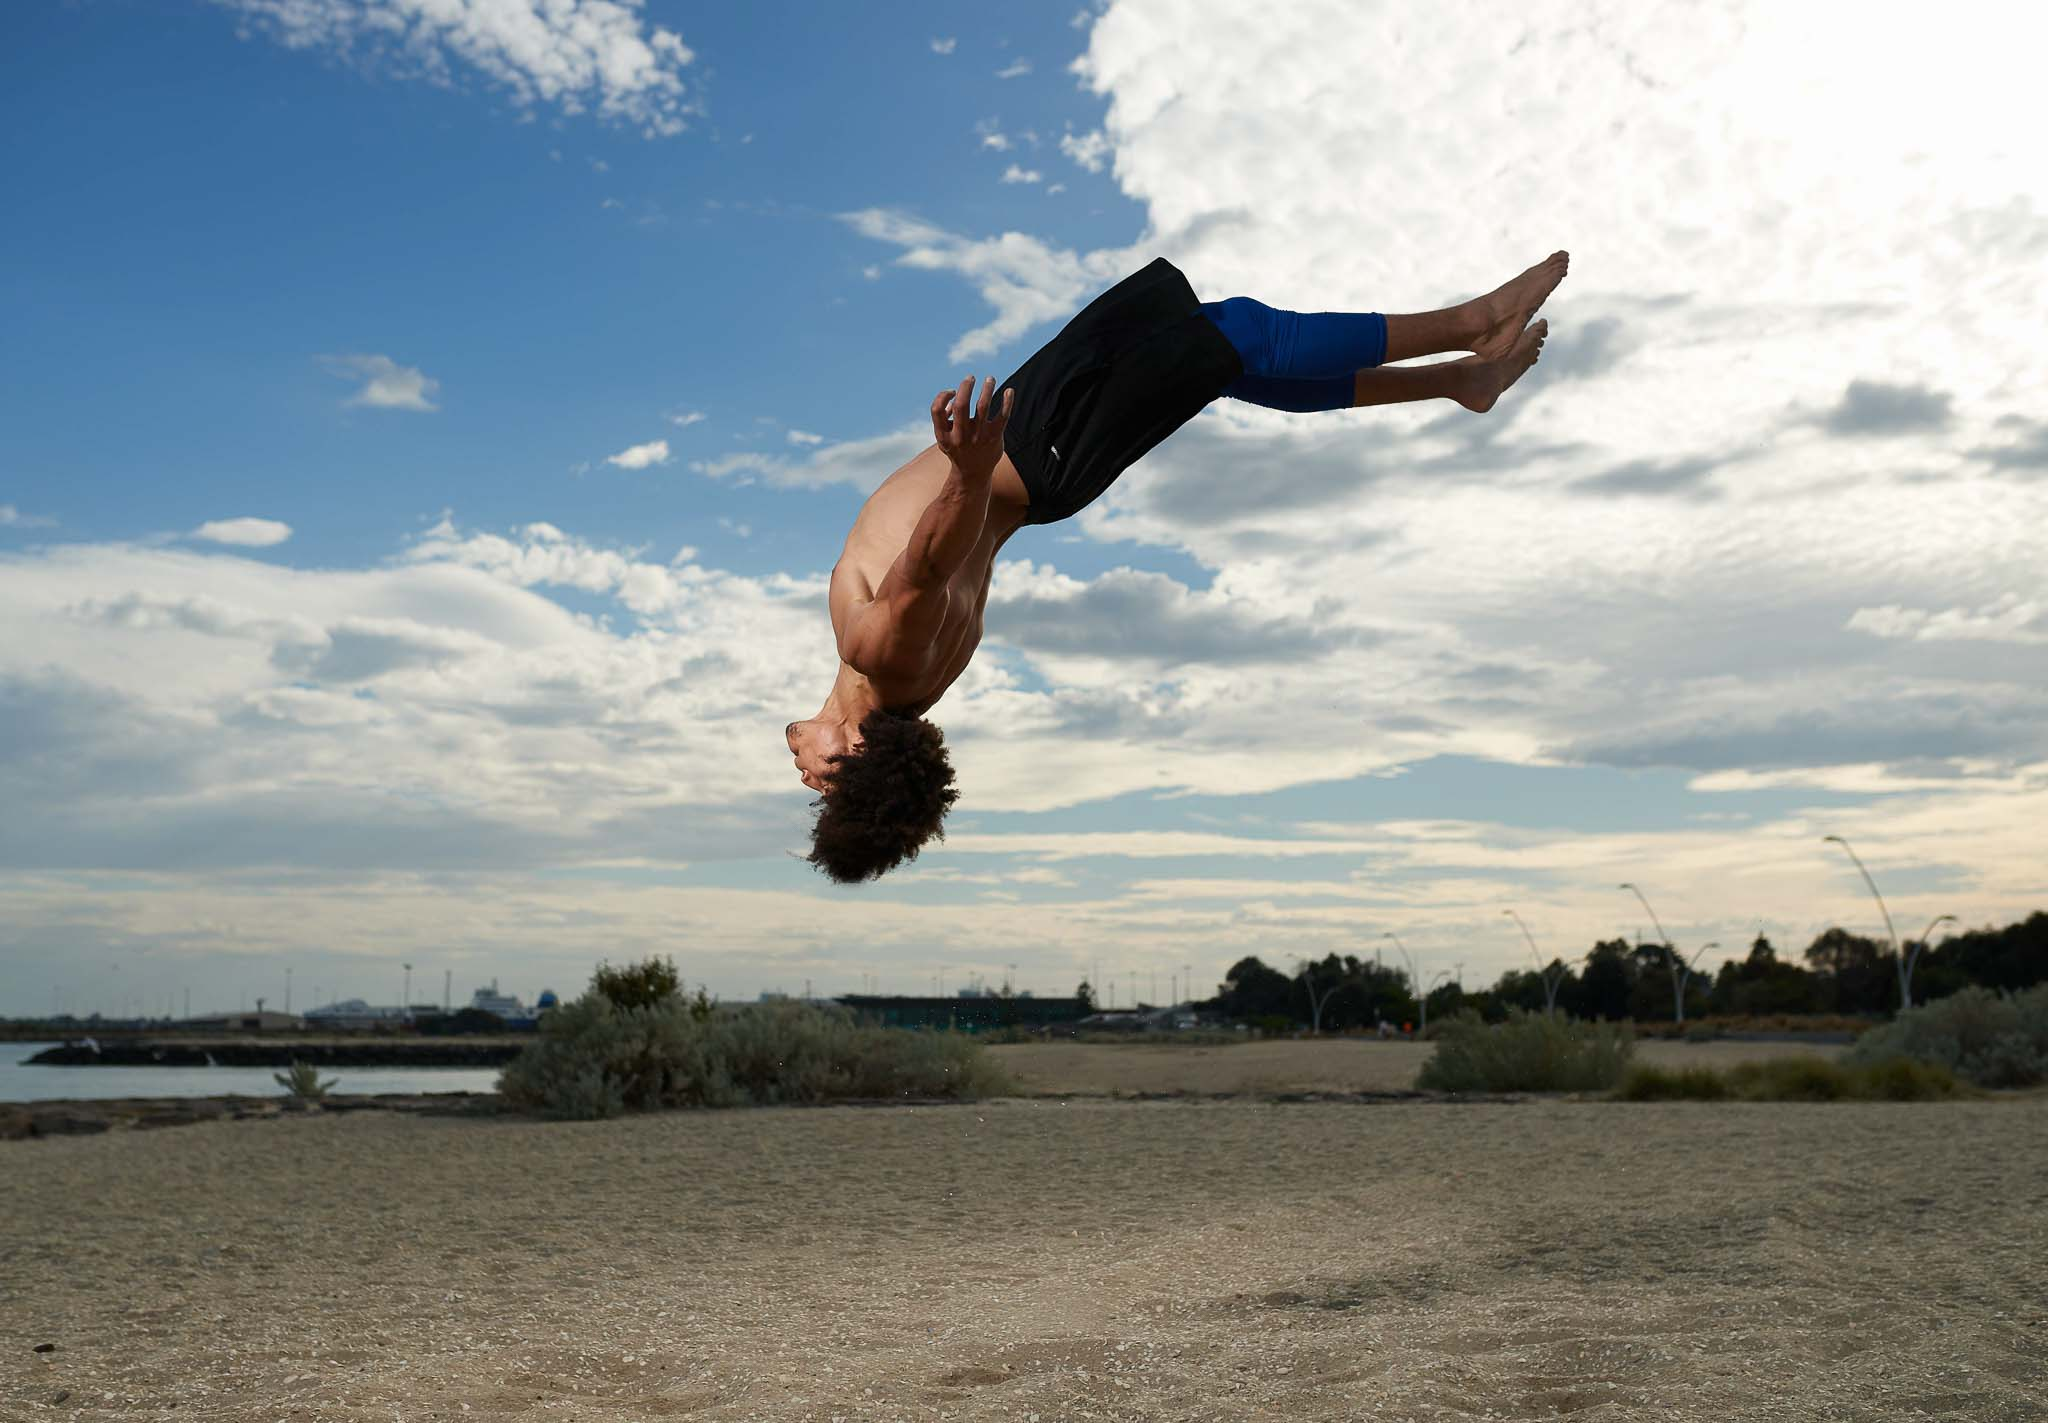 Ossie doing a back-flip at the beach